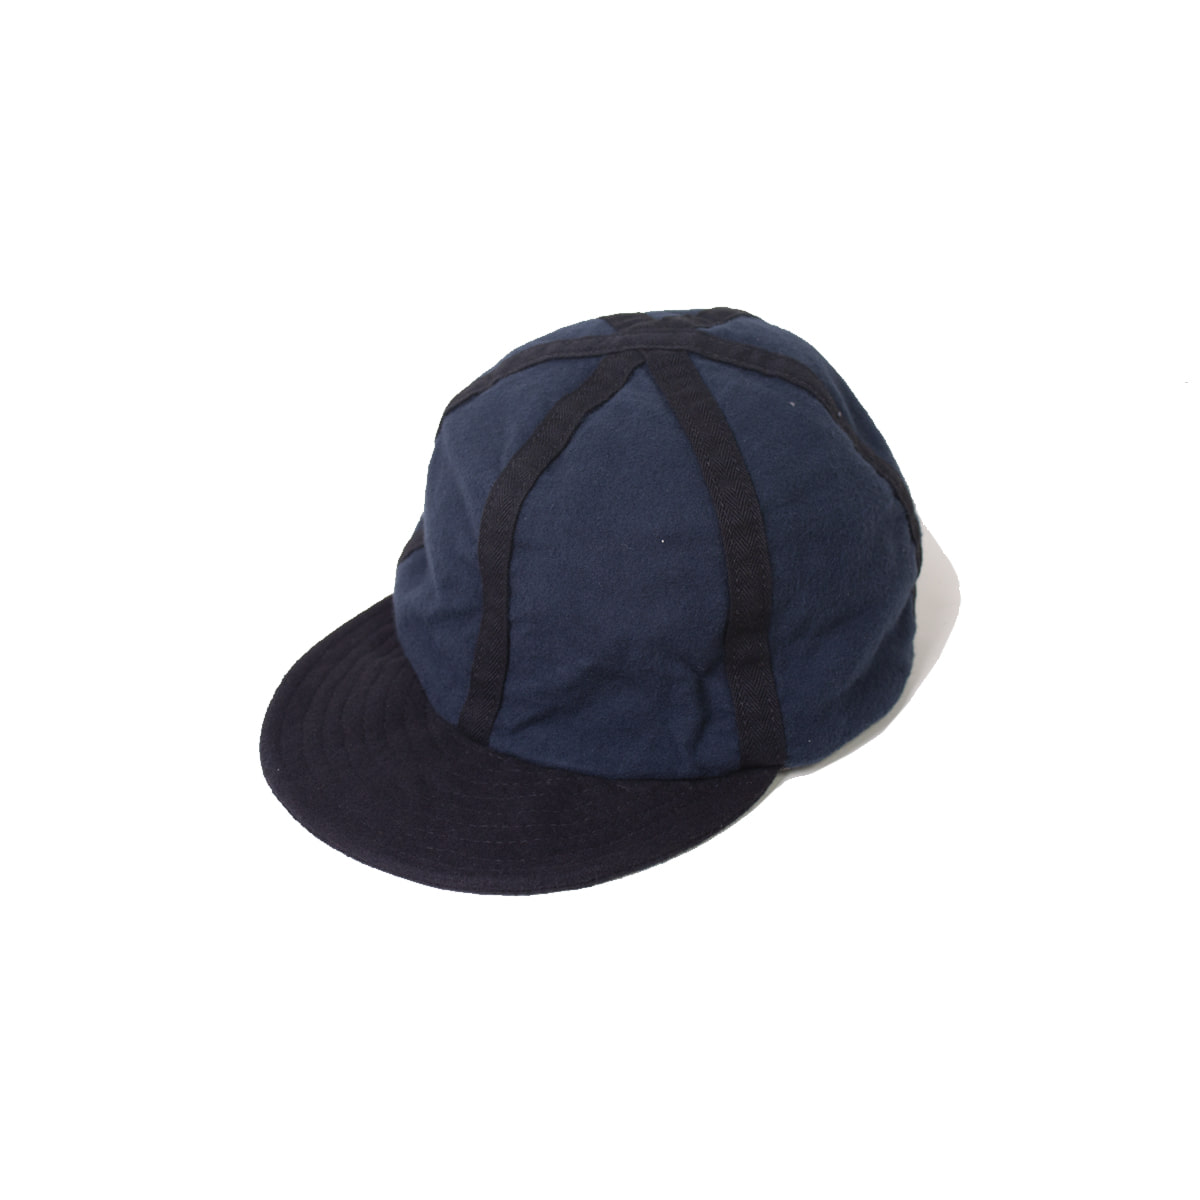 [DECHO] FATIGUE CAP 'NAVY/BLACK'